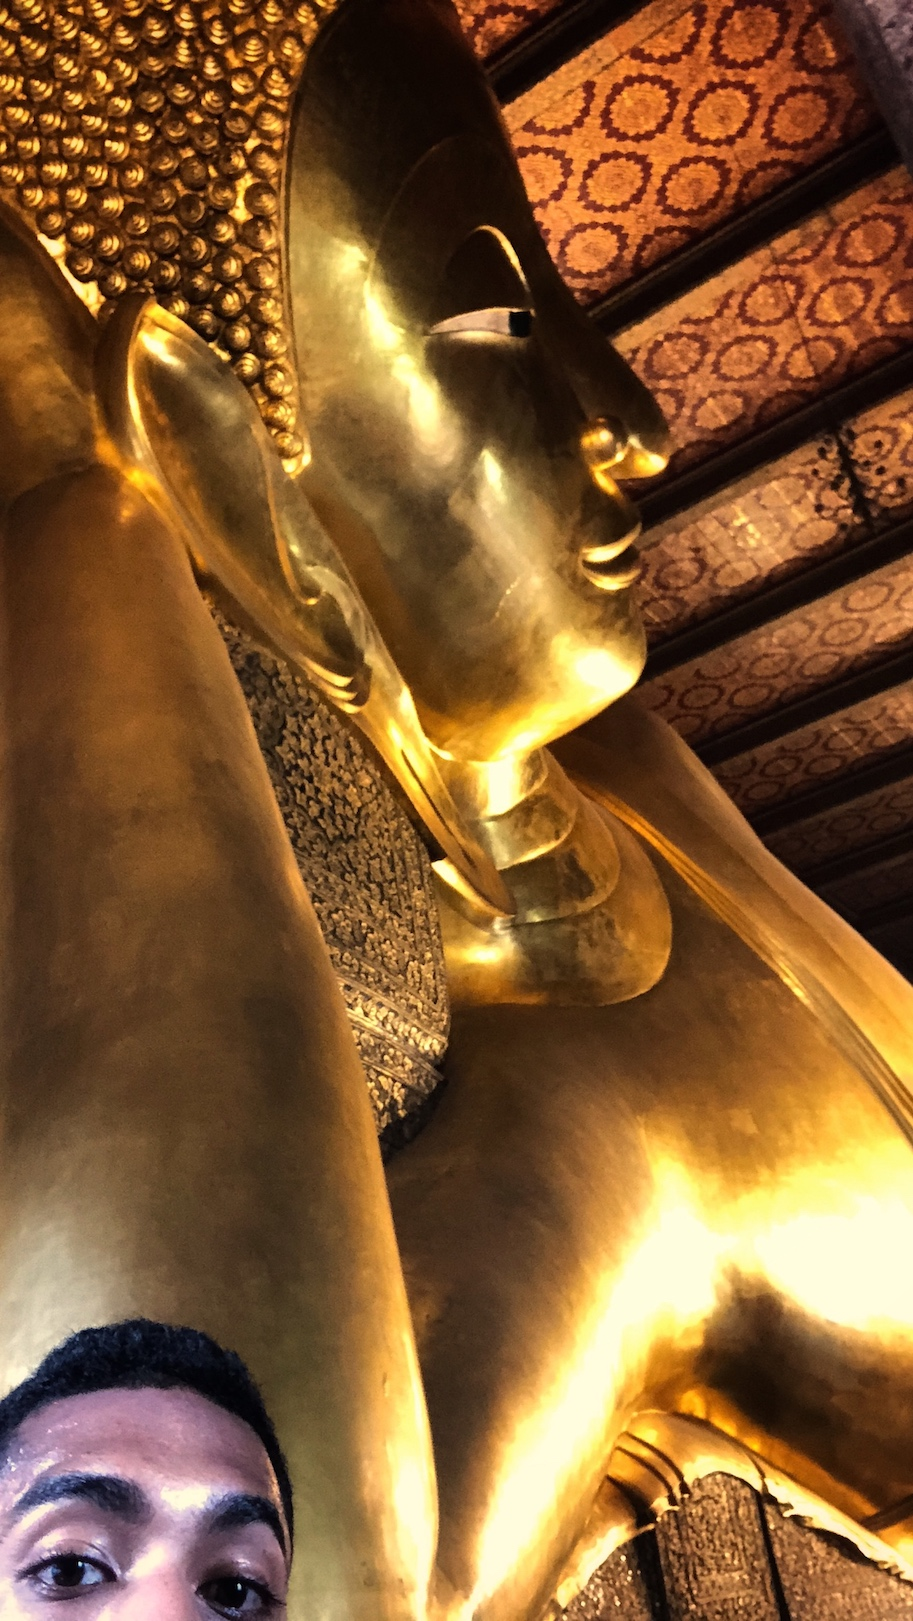 The reclining buddha at Wat Pho in Bangkok, Thailand.